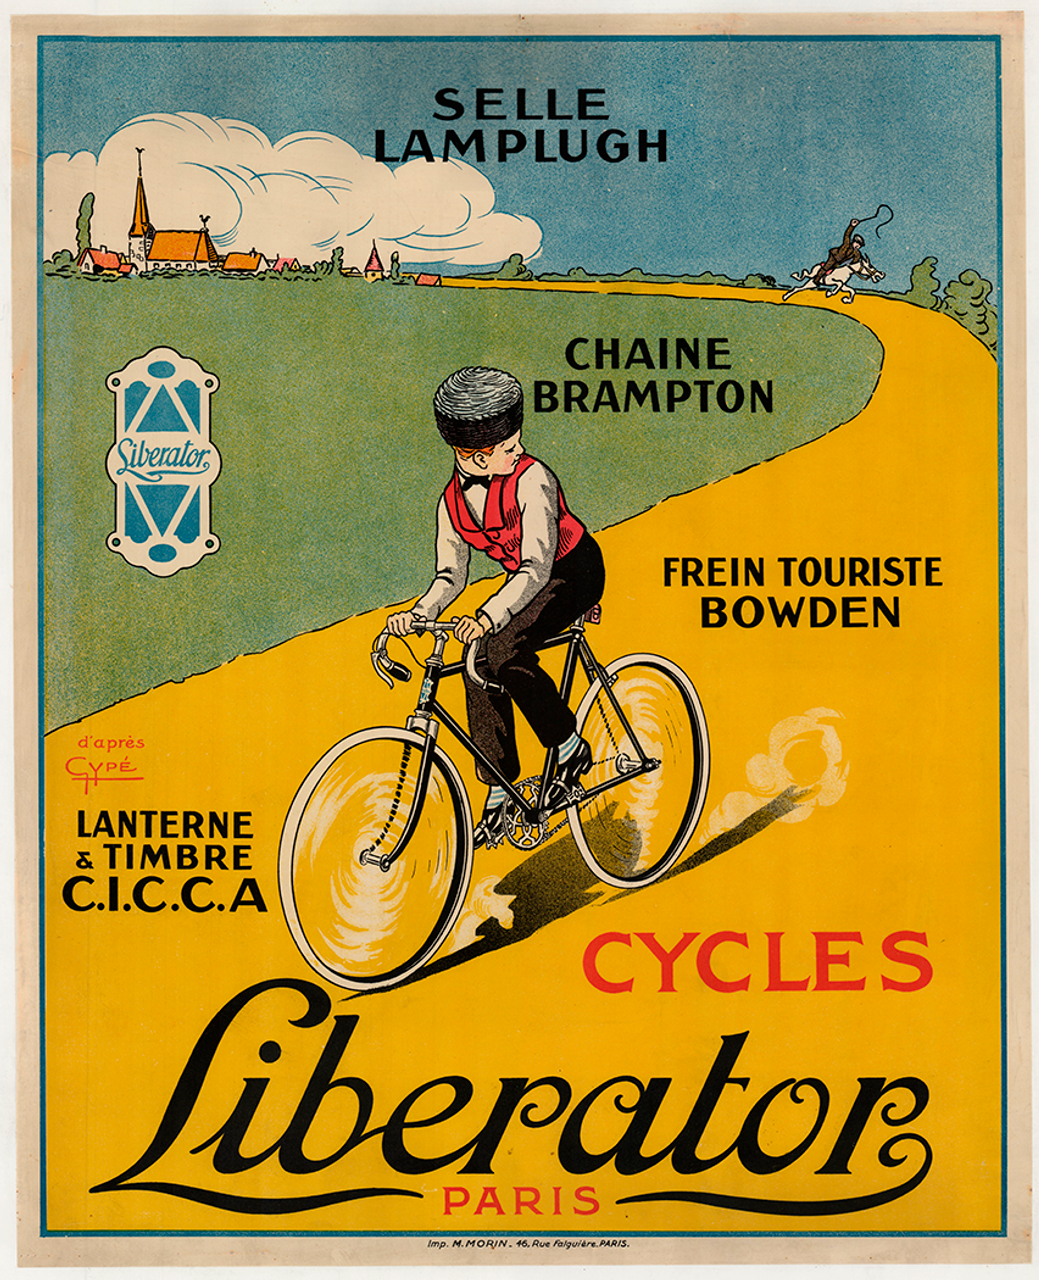 Cycles Liberator Original Vintage Bicycle Poster by Gype